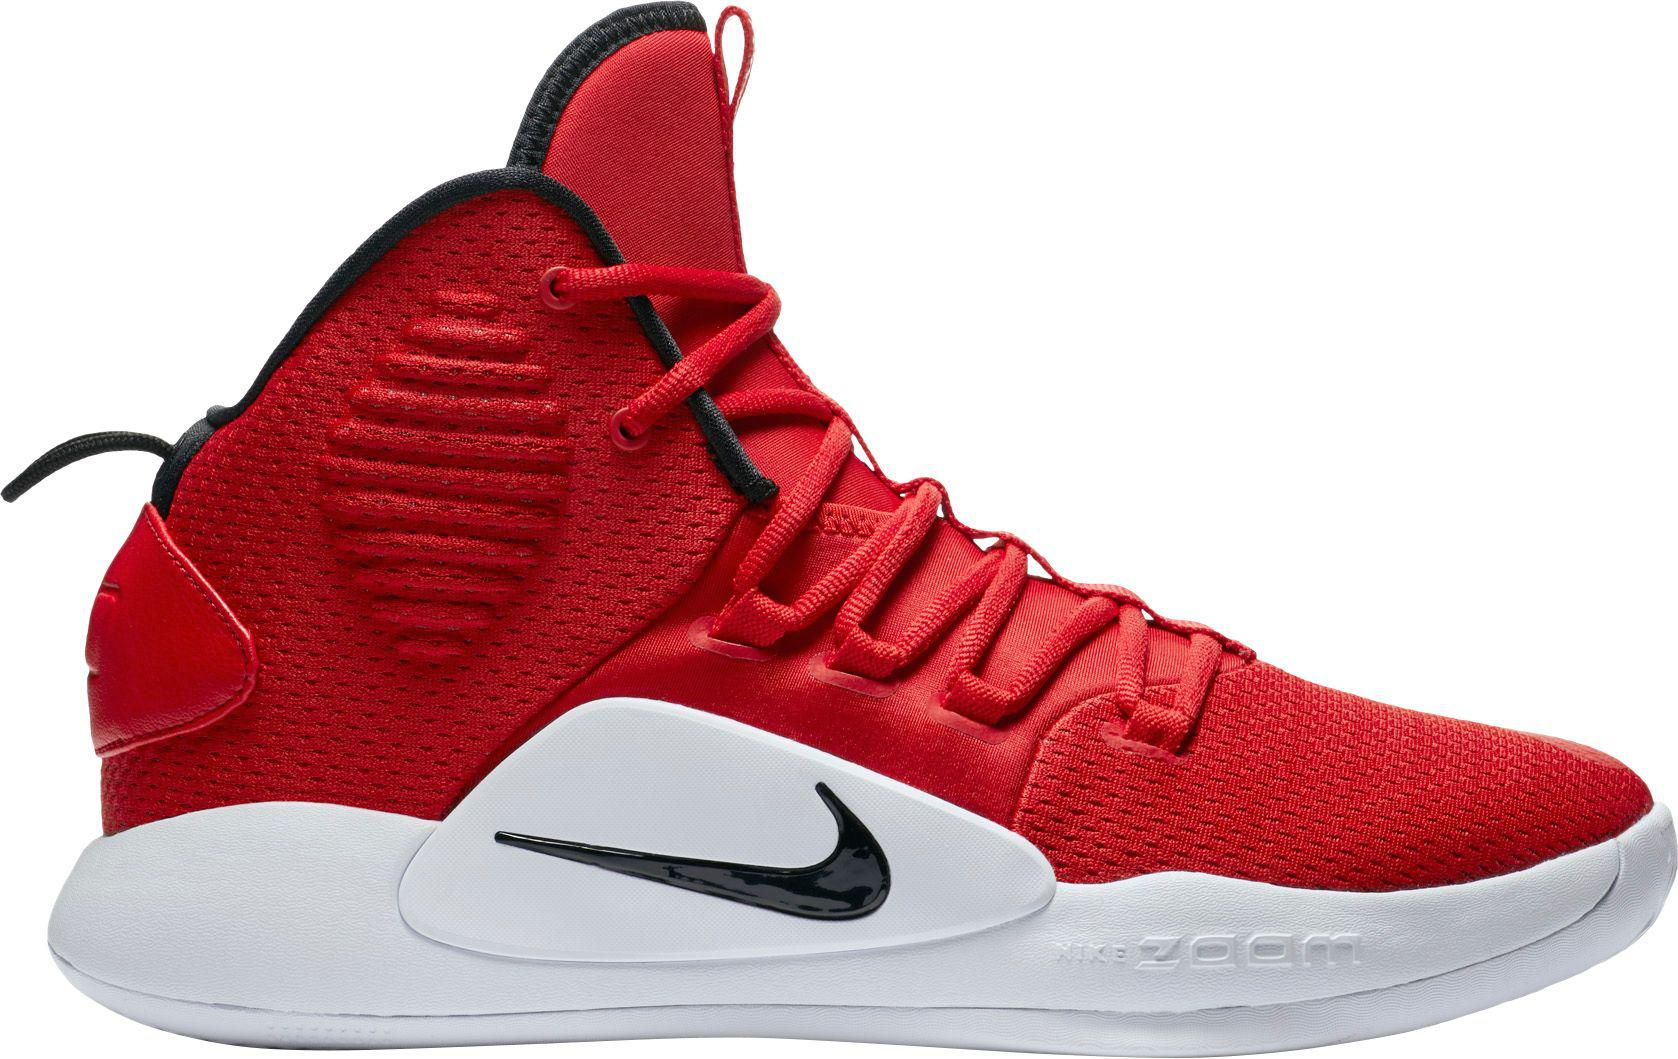 f7421236c99c Nike Hyperdunk X Mid Tb Basketball Shoes in Red for Men - Lyst